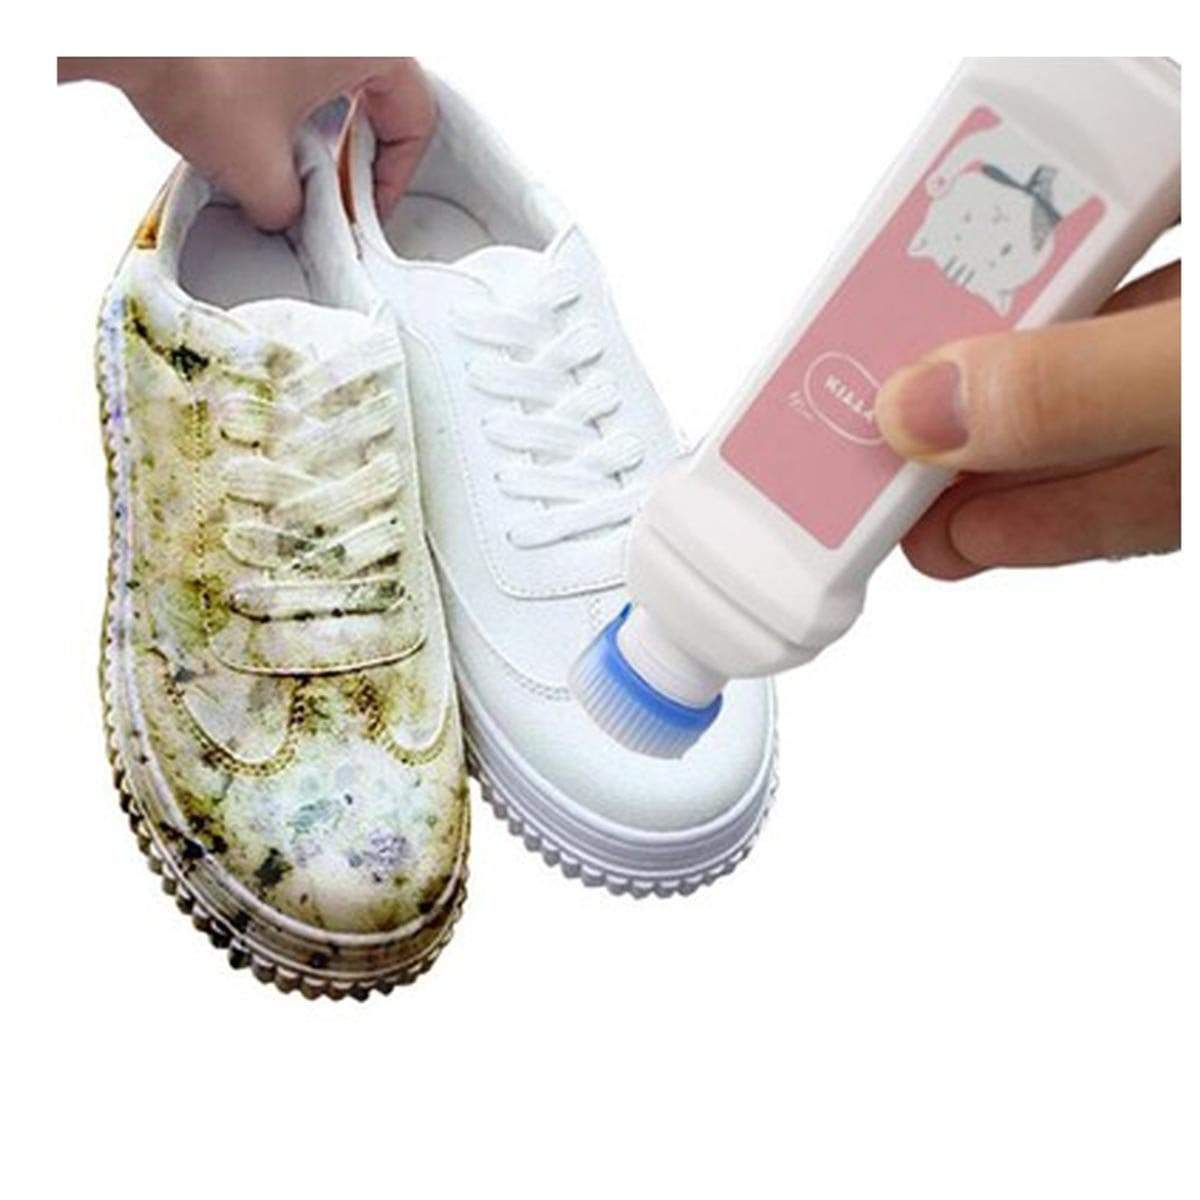 Aneka Shoe Whitening Cleaner